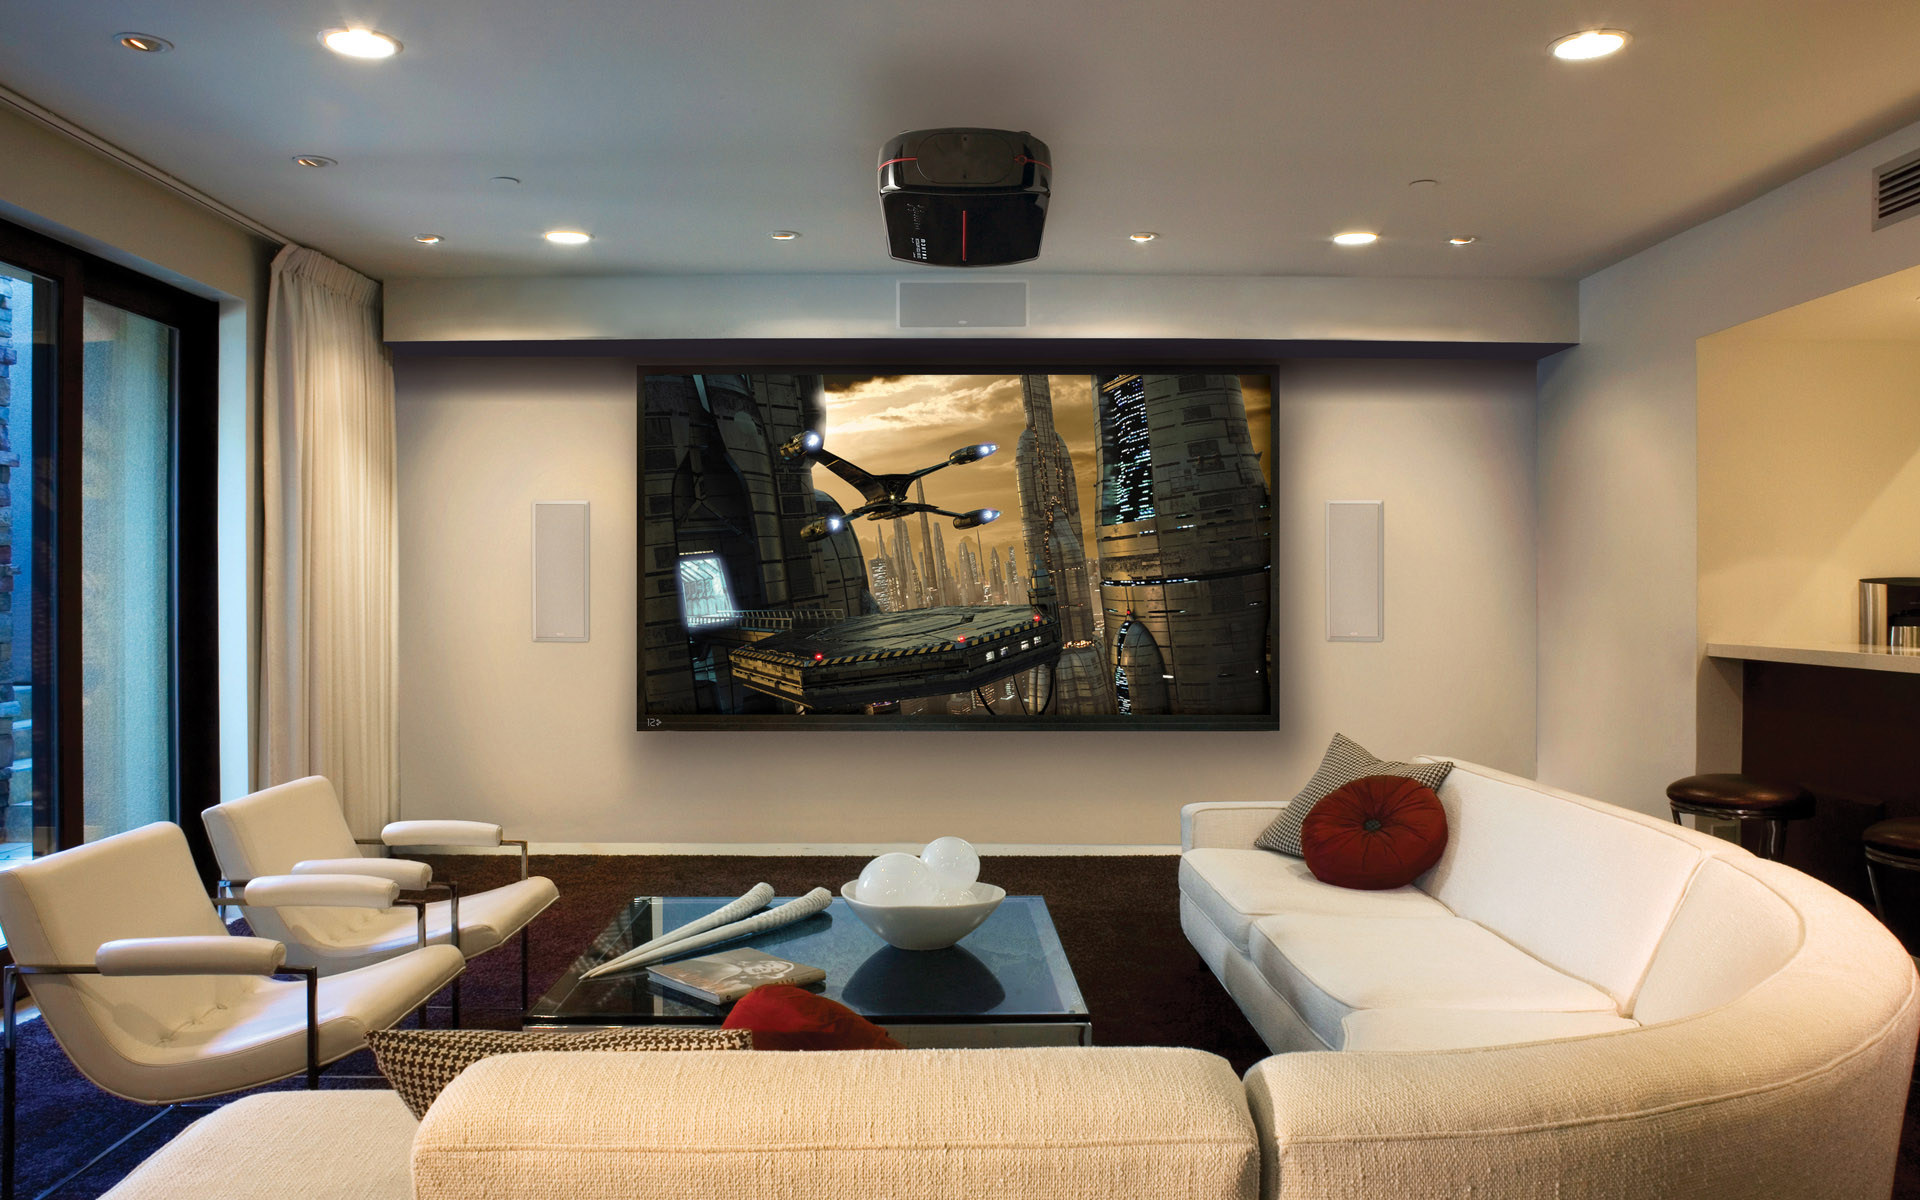 family room deisgn ideas to decorate a living room theaters on a budget